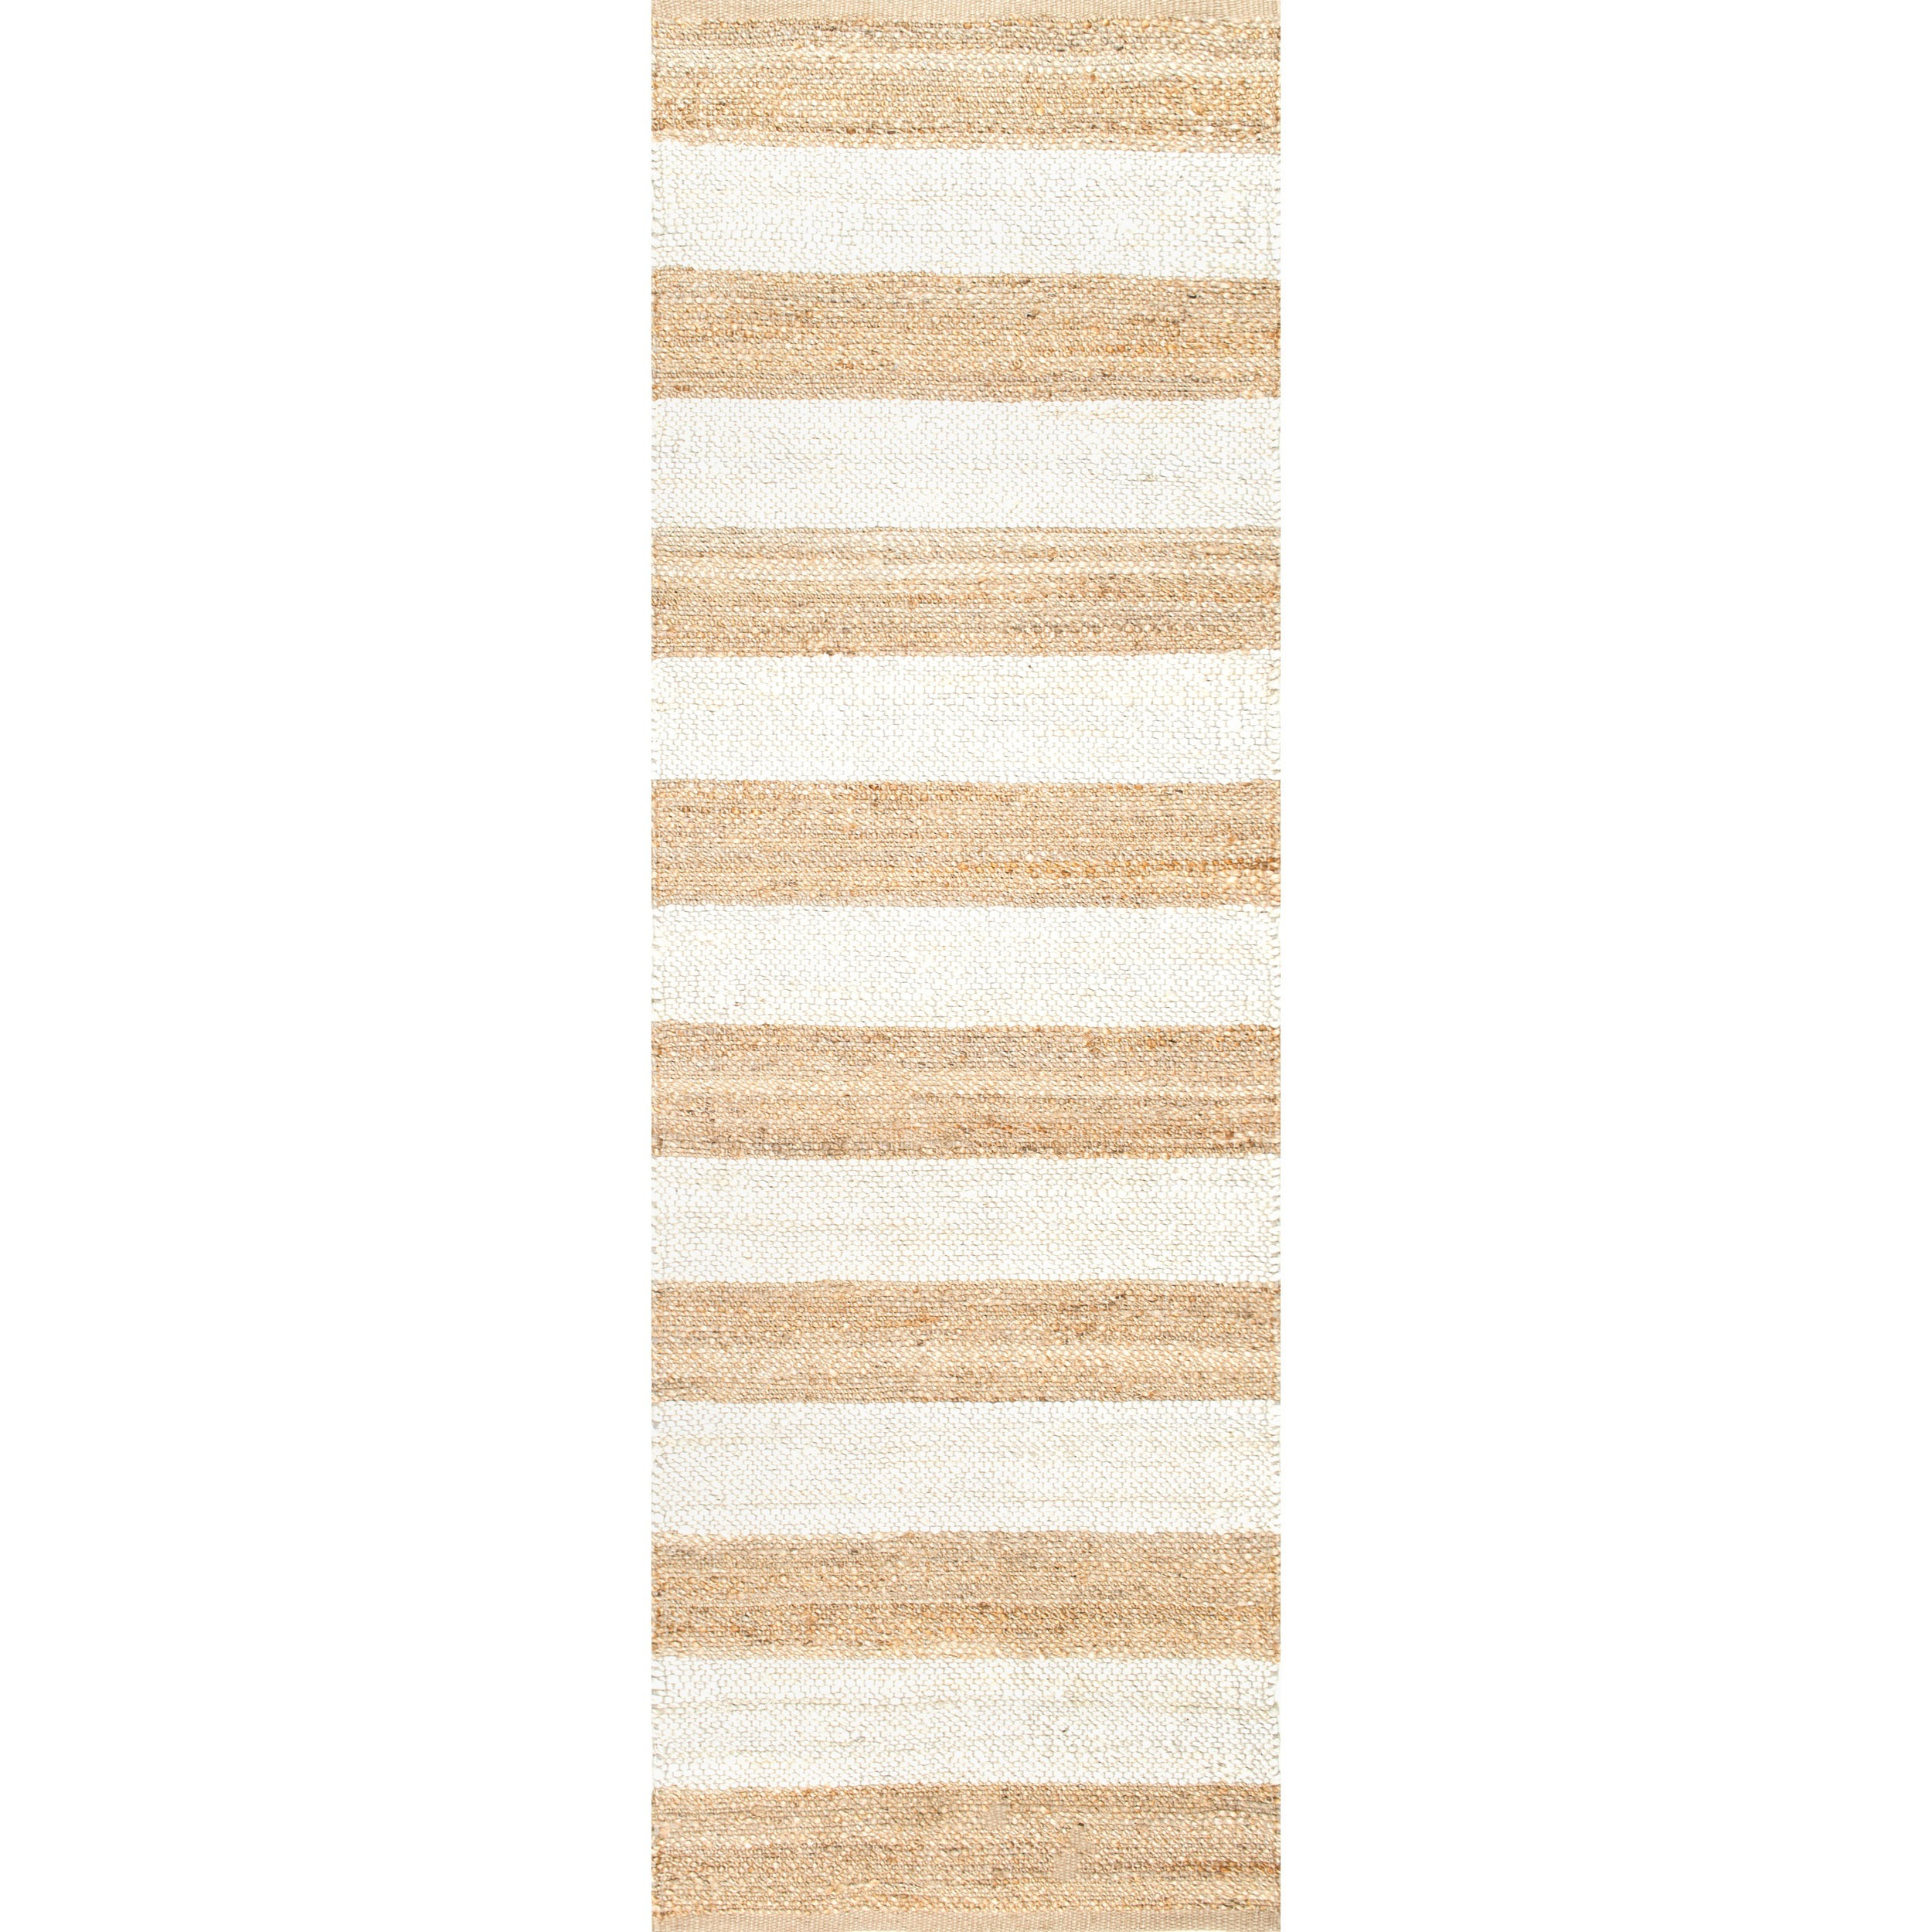 Natural Fiber Jute Thick Stripes Runner Rug // Pencil and Paper Co. Favorite Finds